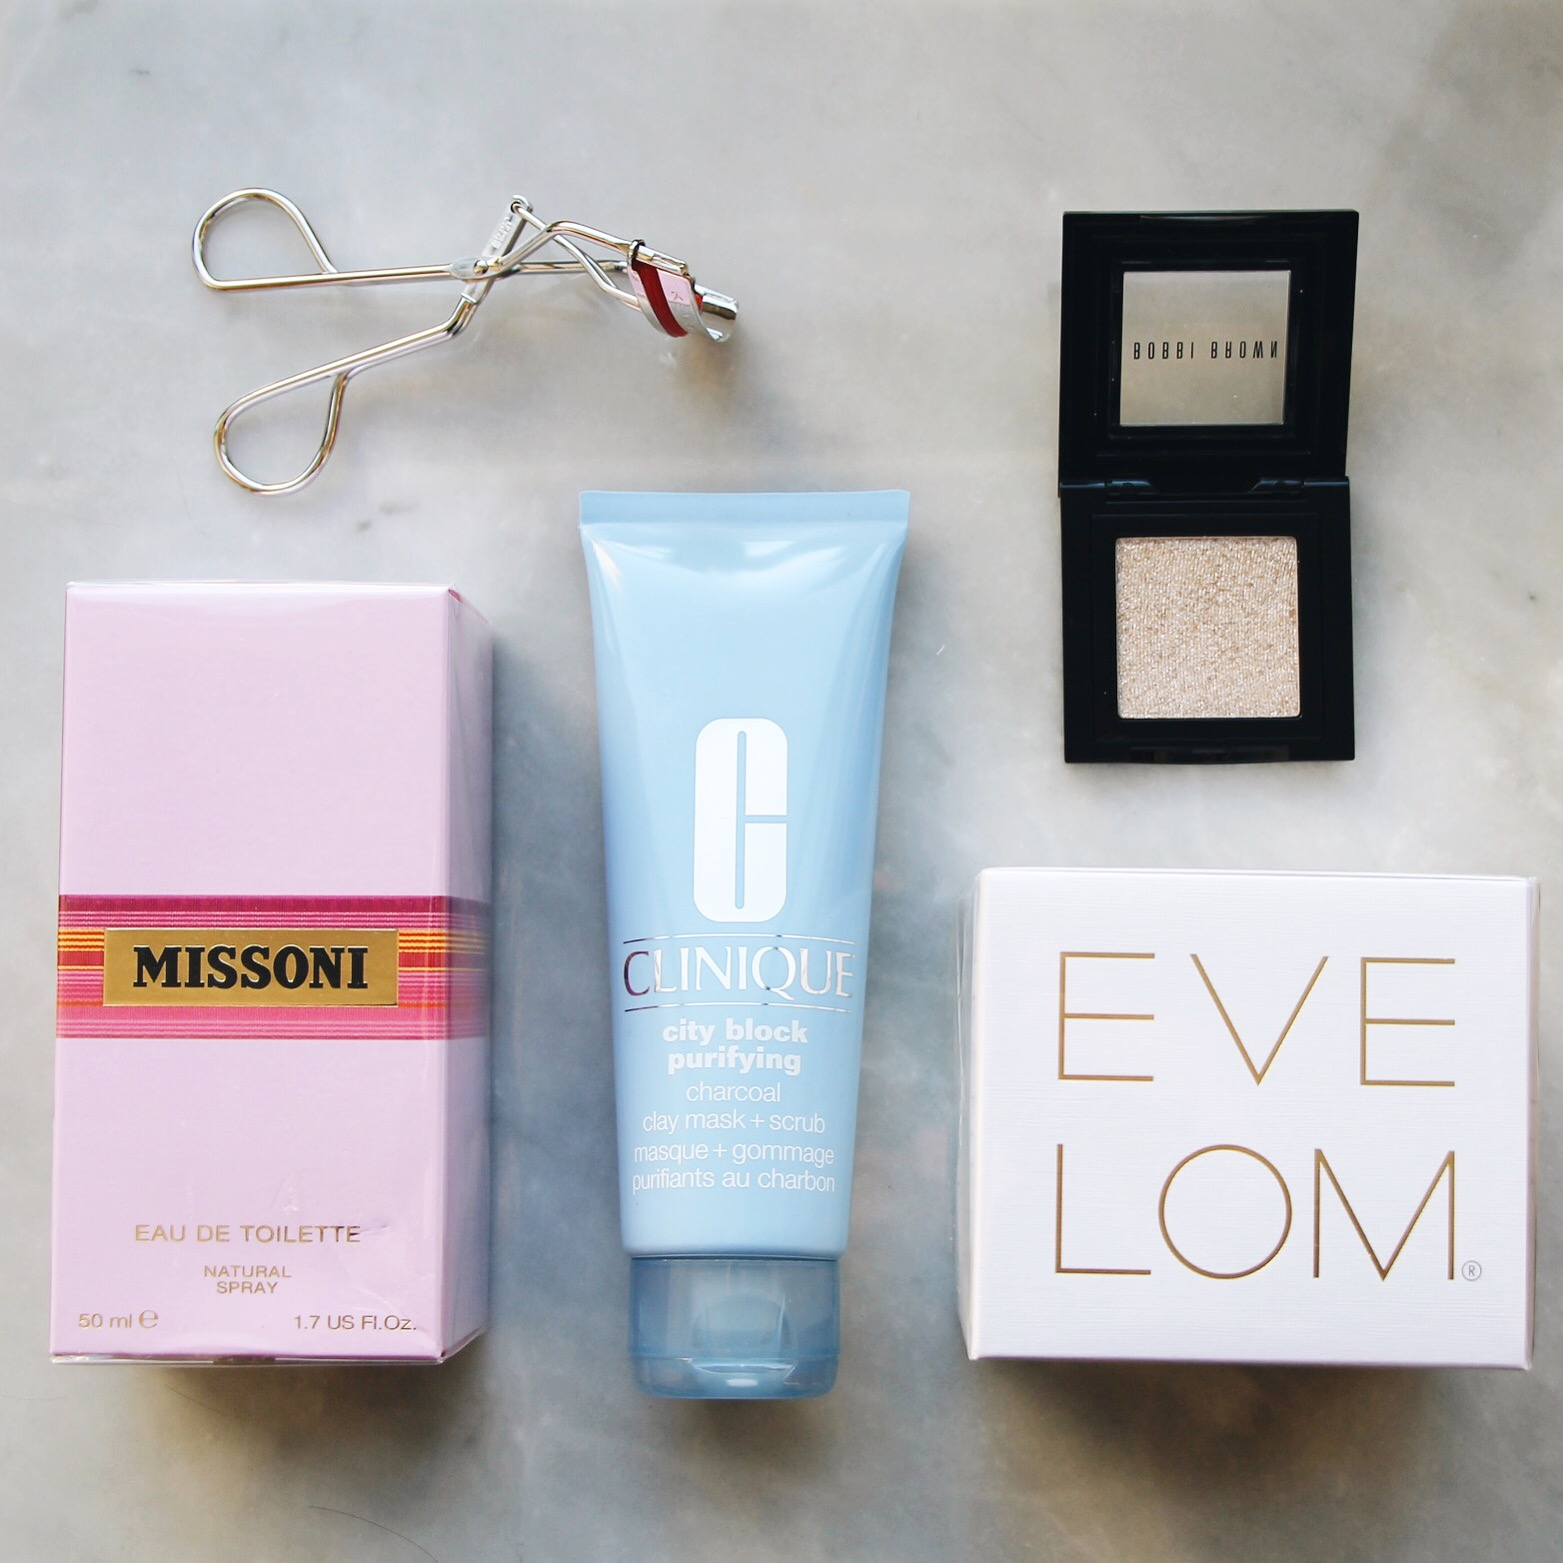 RAN Bonus Box: Bloomingdale's Beauty, Rakuten Affiliate Network, Eve Lom Cleanser, Kevyn Aucoin Eyelash Curler, Bobbi Brown Sparkle Eye Shadow, Missoni Fragrance, Clinique City Block Charcoal Mask and Scrub